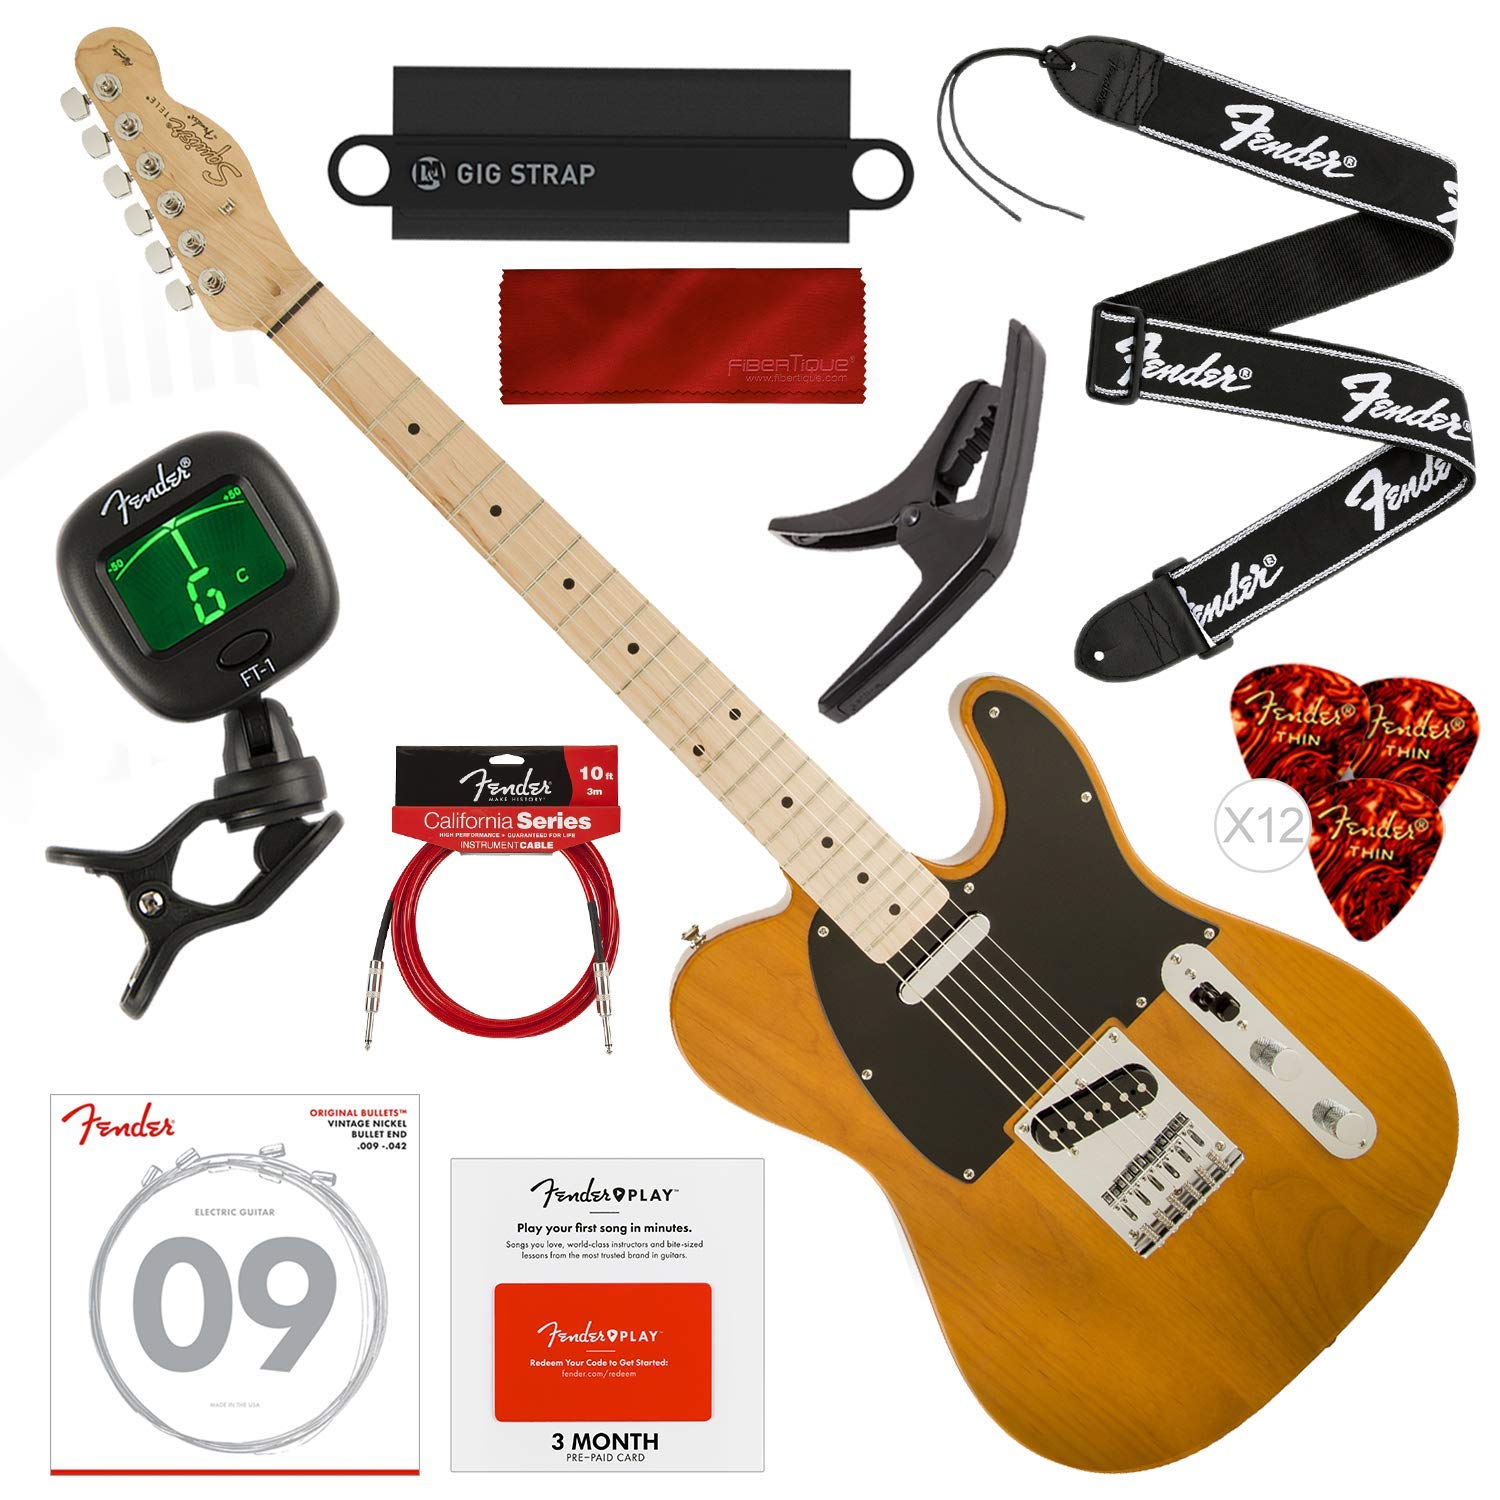 Cheap Squier by Fender Affinity Series Telecaster Beginner Electric Guitar Butterscotch Blonde with Fender Play Pre-Paid Card Tuner Strap Strings Picks Cable & Deluxe Starter Pack Bundle Black Friday & Cyber Monday 2019